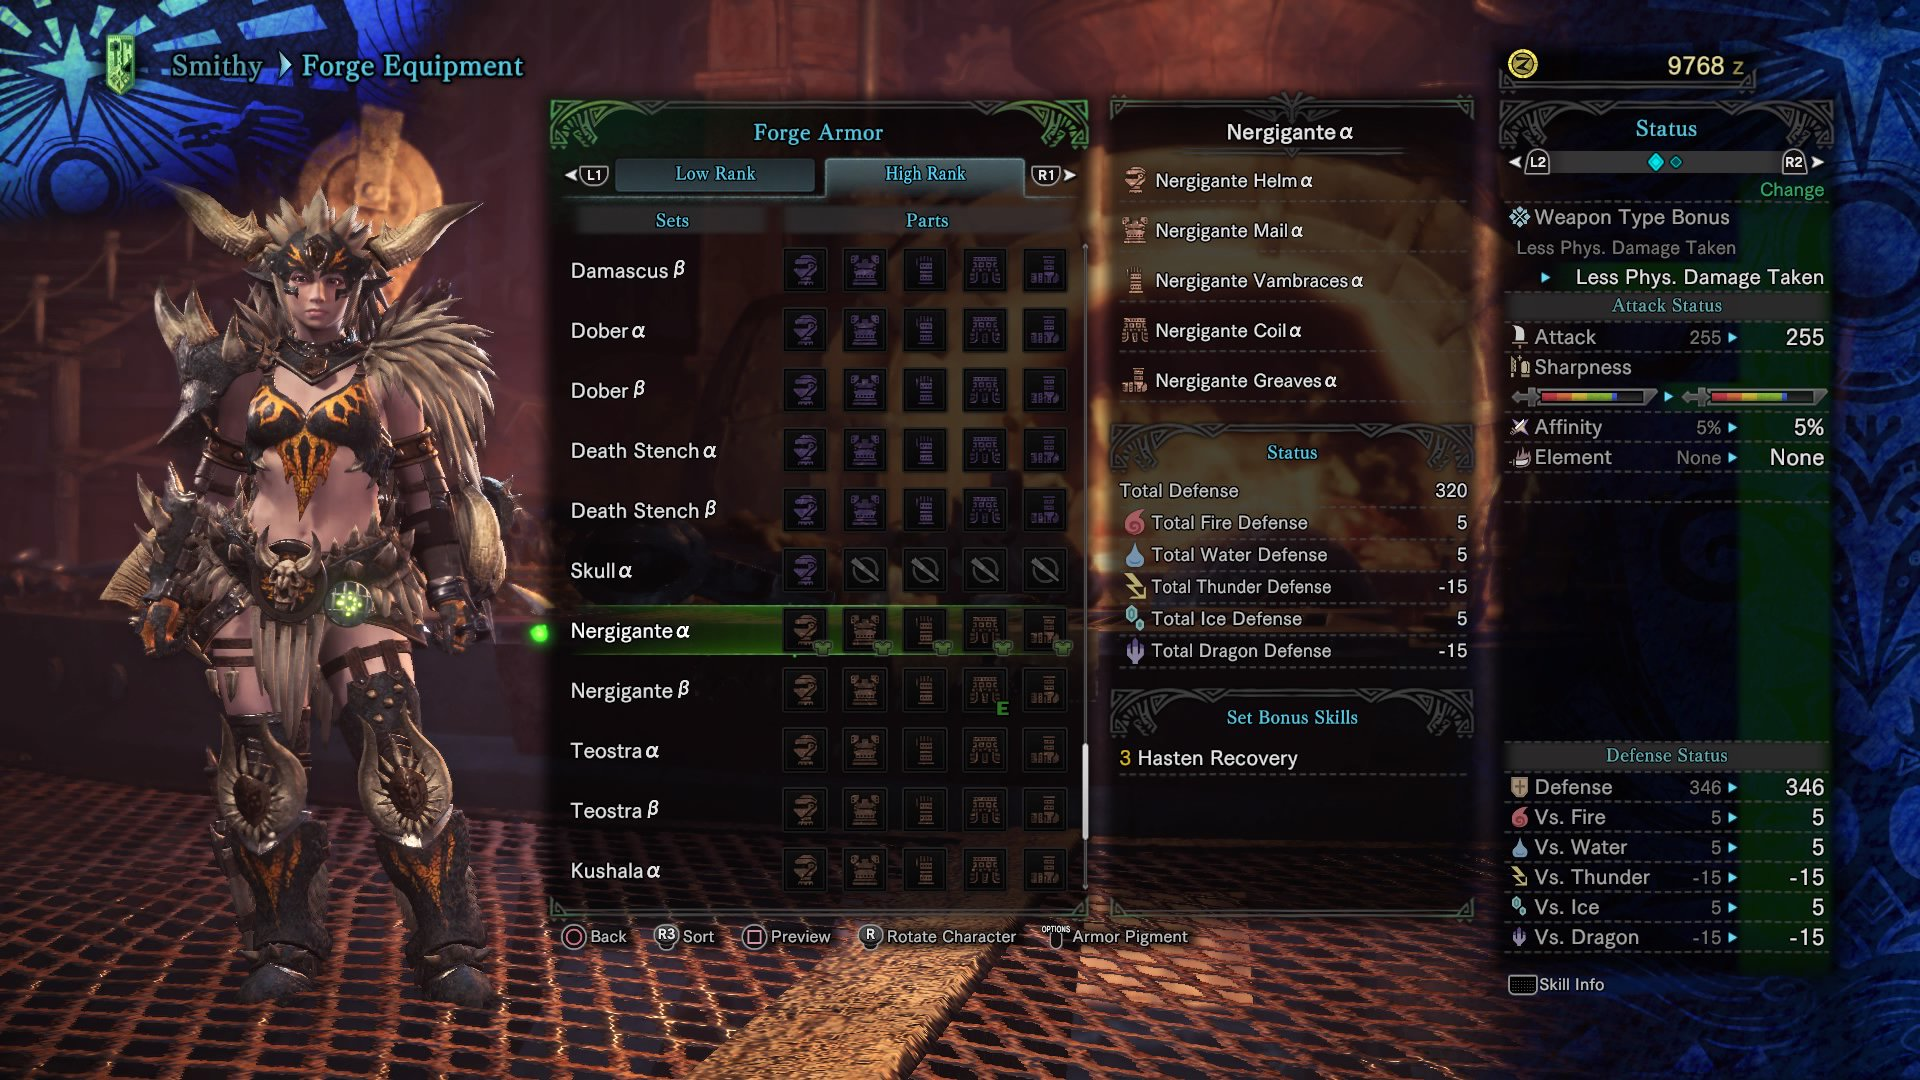 Monster Hunter World Armor - How to Forge and Upgrade Armor